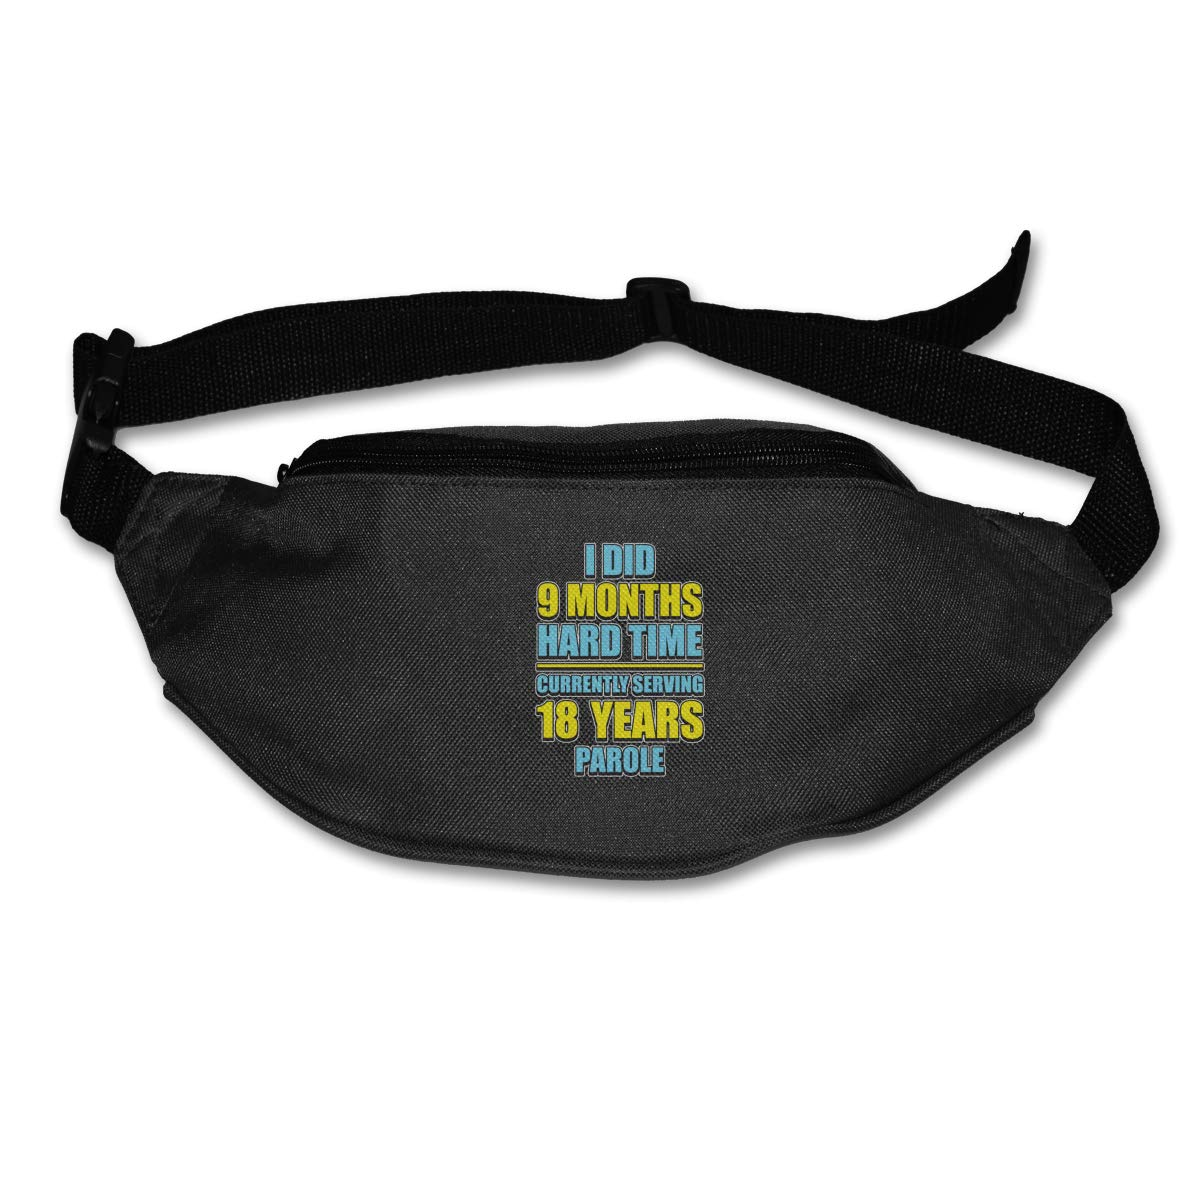 L Did 9 Months Hard Time Serving 18 Years Parole Waist Packs Fanny Pack